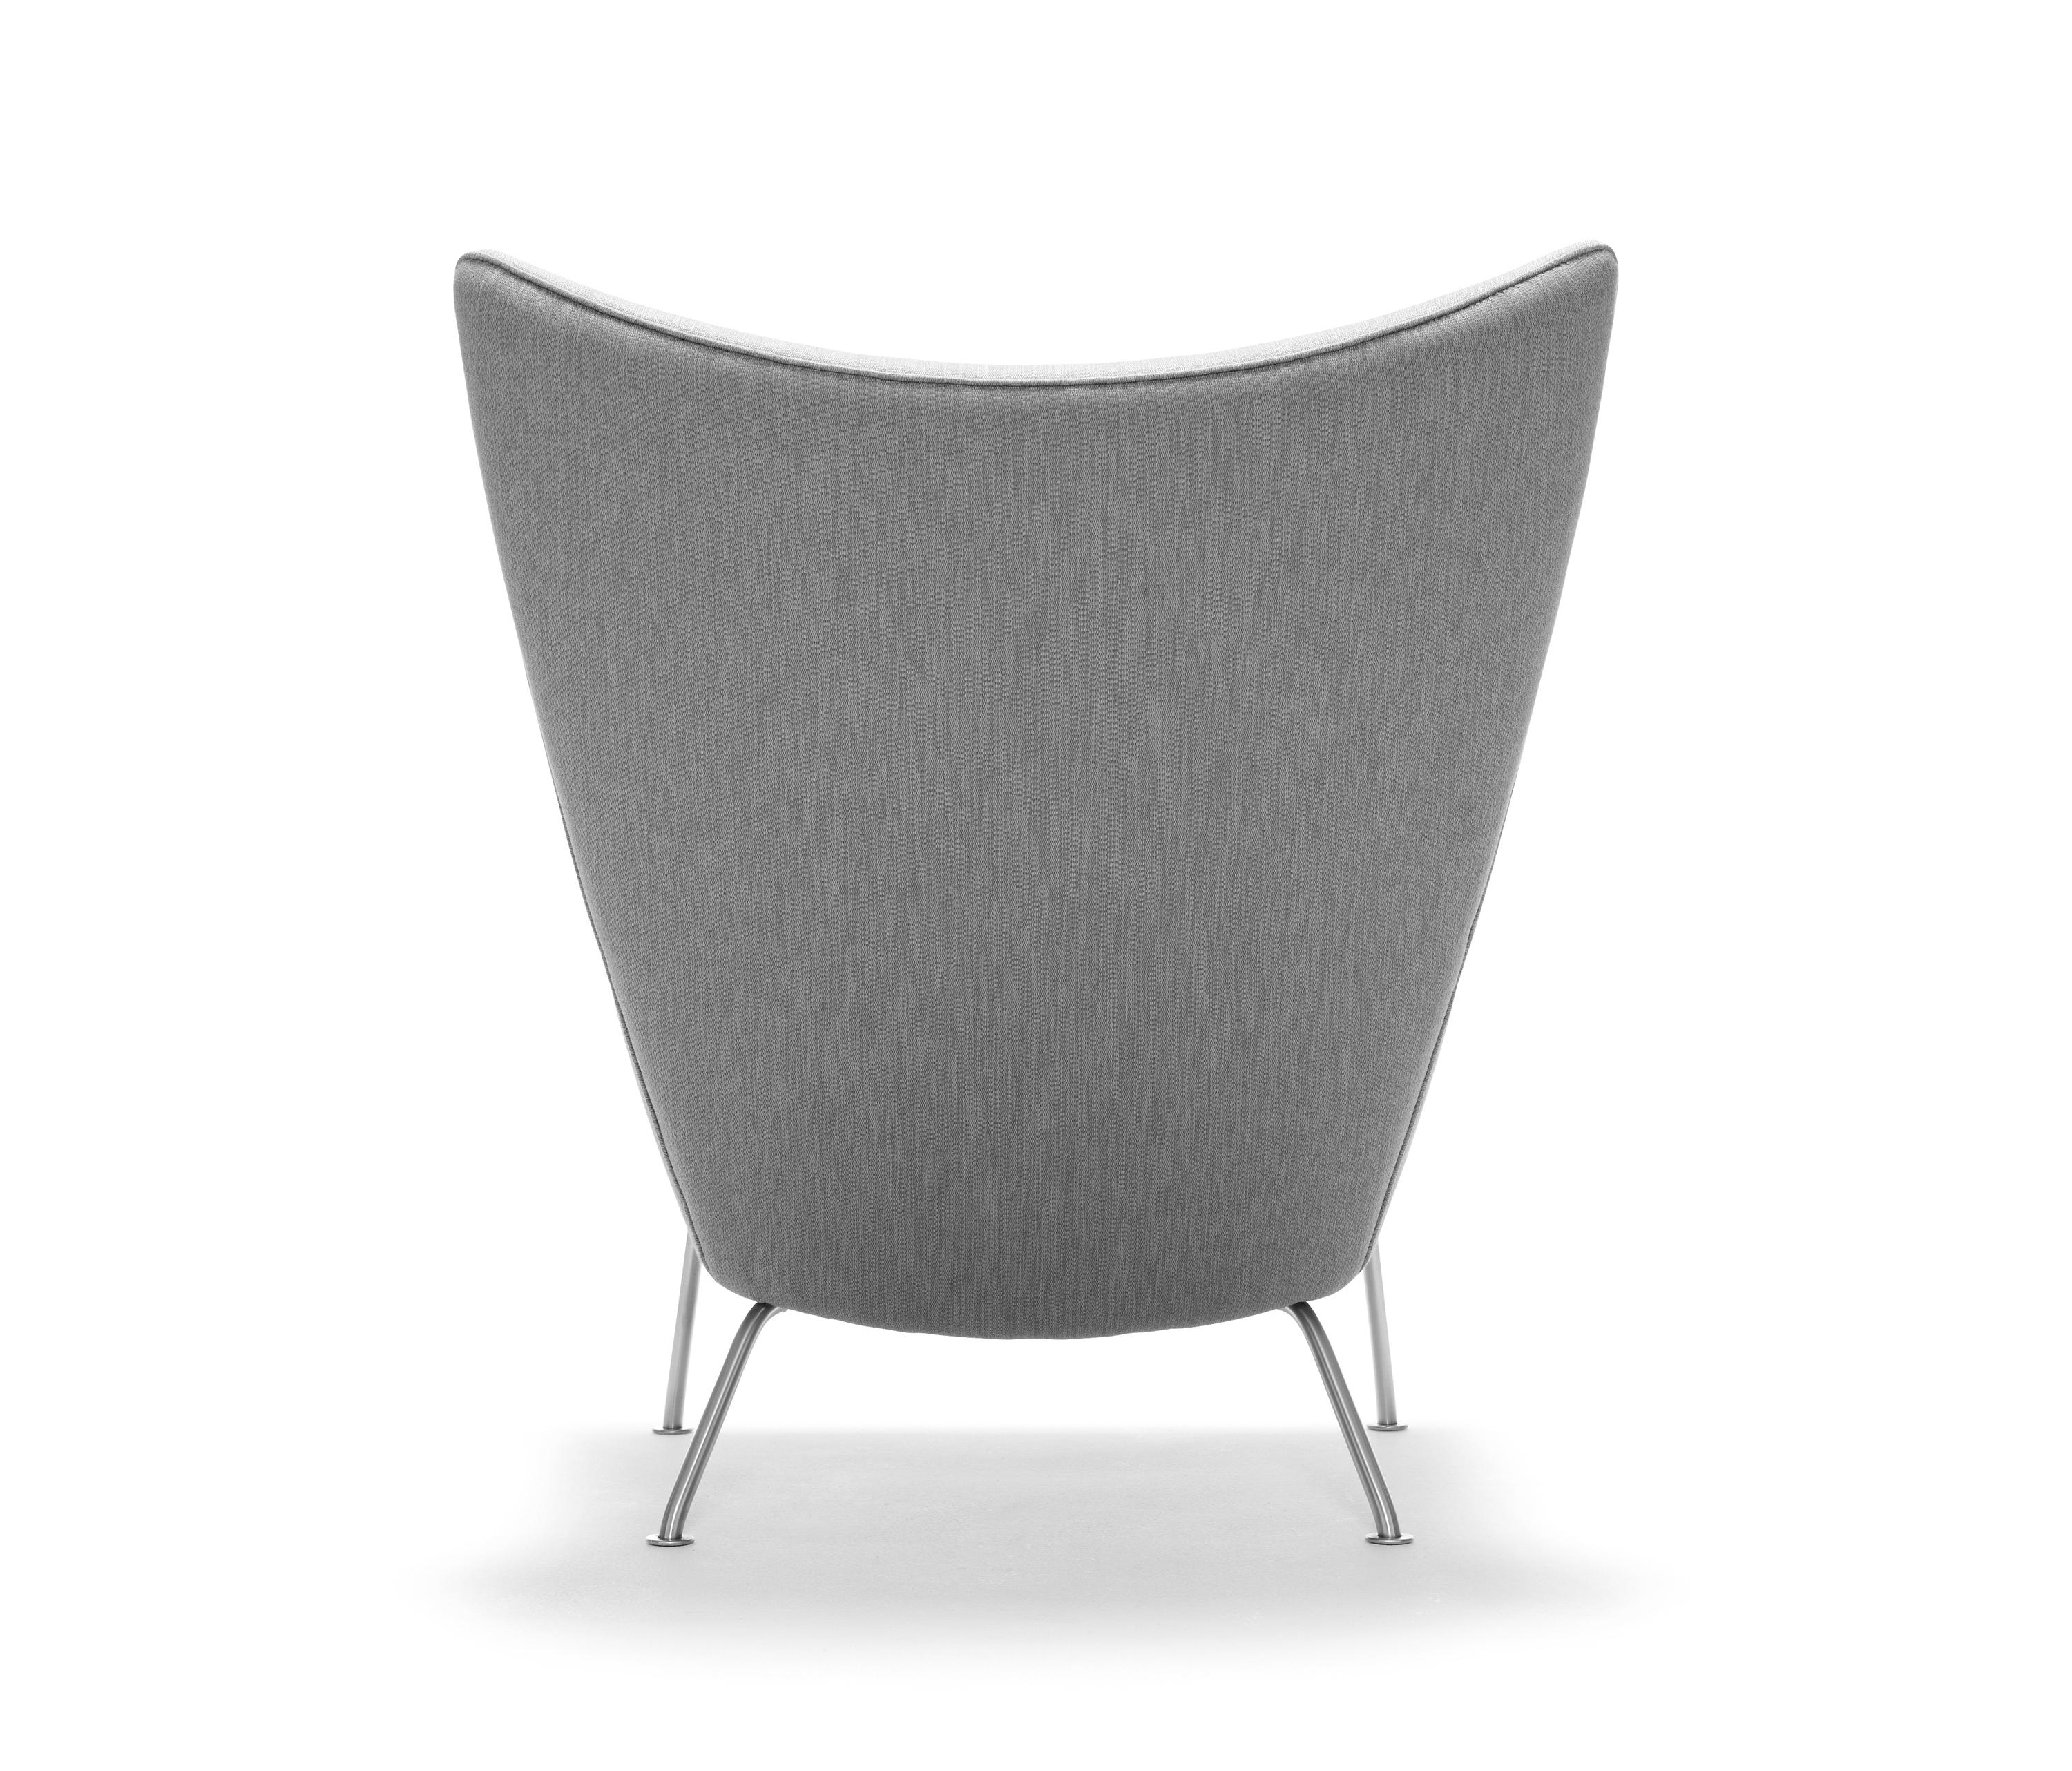 CH445 WING CHAIR Lounge chairs from Carl Hansen & S¸n